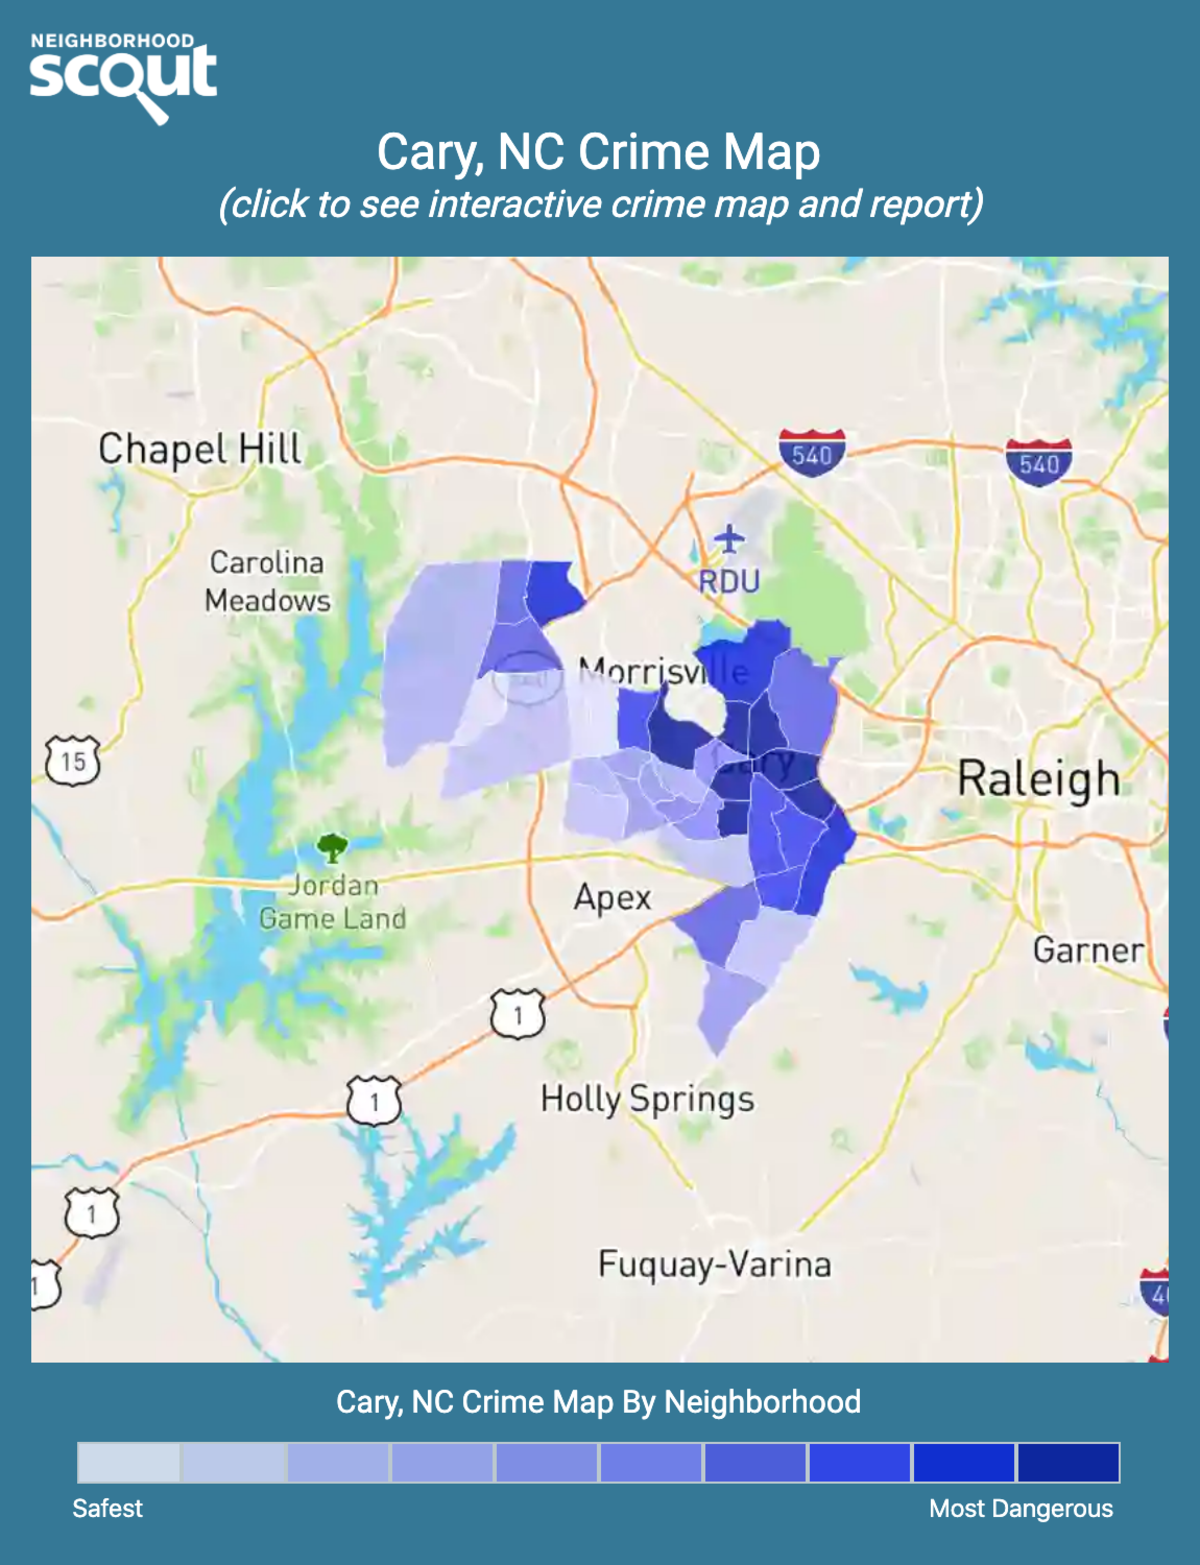 Cary, NC Crime Rates and Statistics - NeighborhoodScout on crime map madison wi, crime map st. paul mn, crime map pittsburgh pa, crime map atlanta ga, recent murders in durham nc, crime map reno nv, crime map queens ny, crime map washington dc, crime map richmond va, crime map chicago il, crime map everett wa, crime map boston ma, crime map jacksonville fl, animal control durham nc, crime map tampa fl, crime map milwaukee wi, crime map el paso tx, crime map charleston sc, mugshots durham nc, weather durham nc,